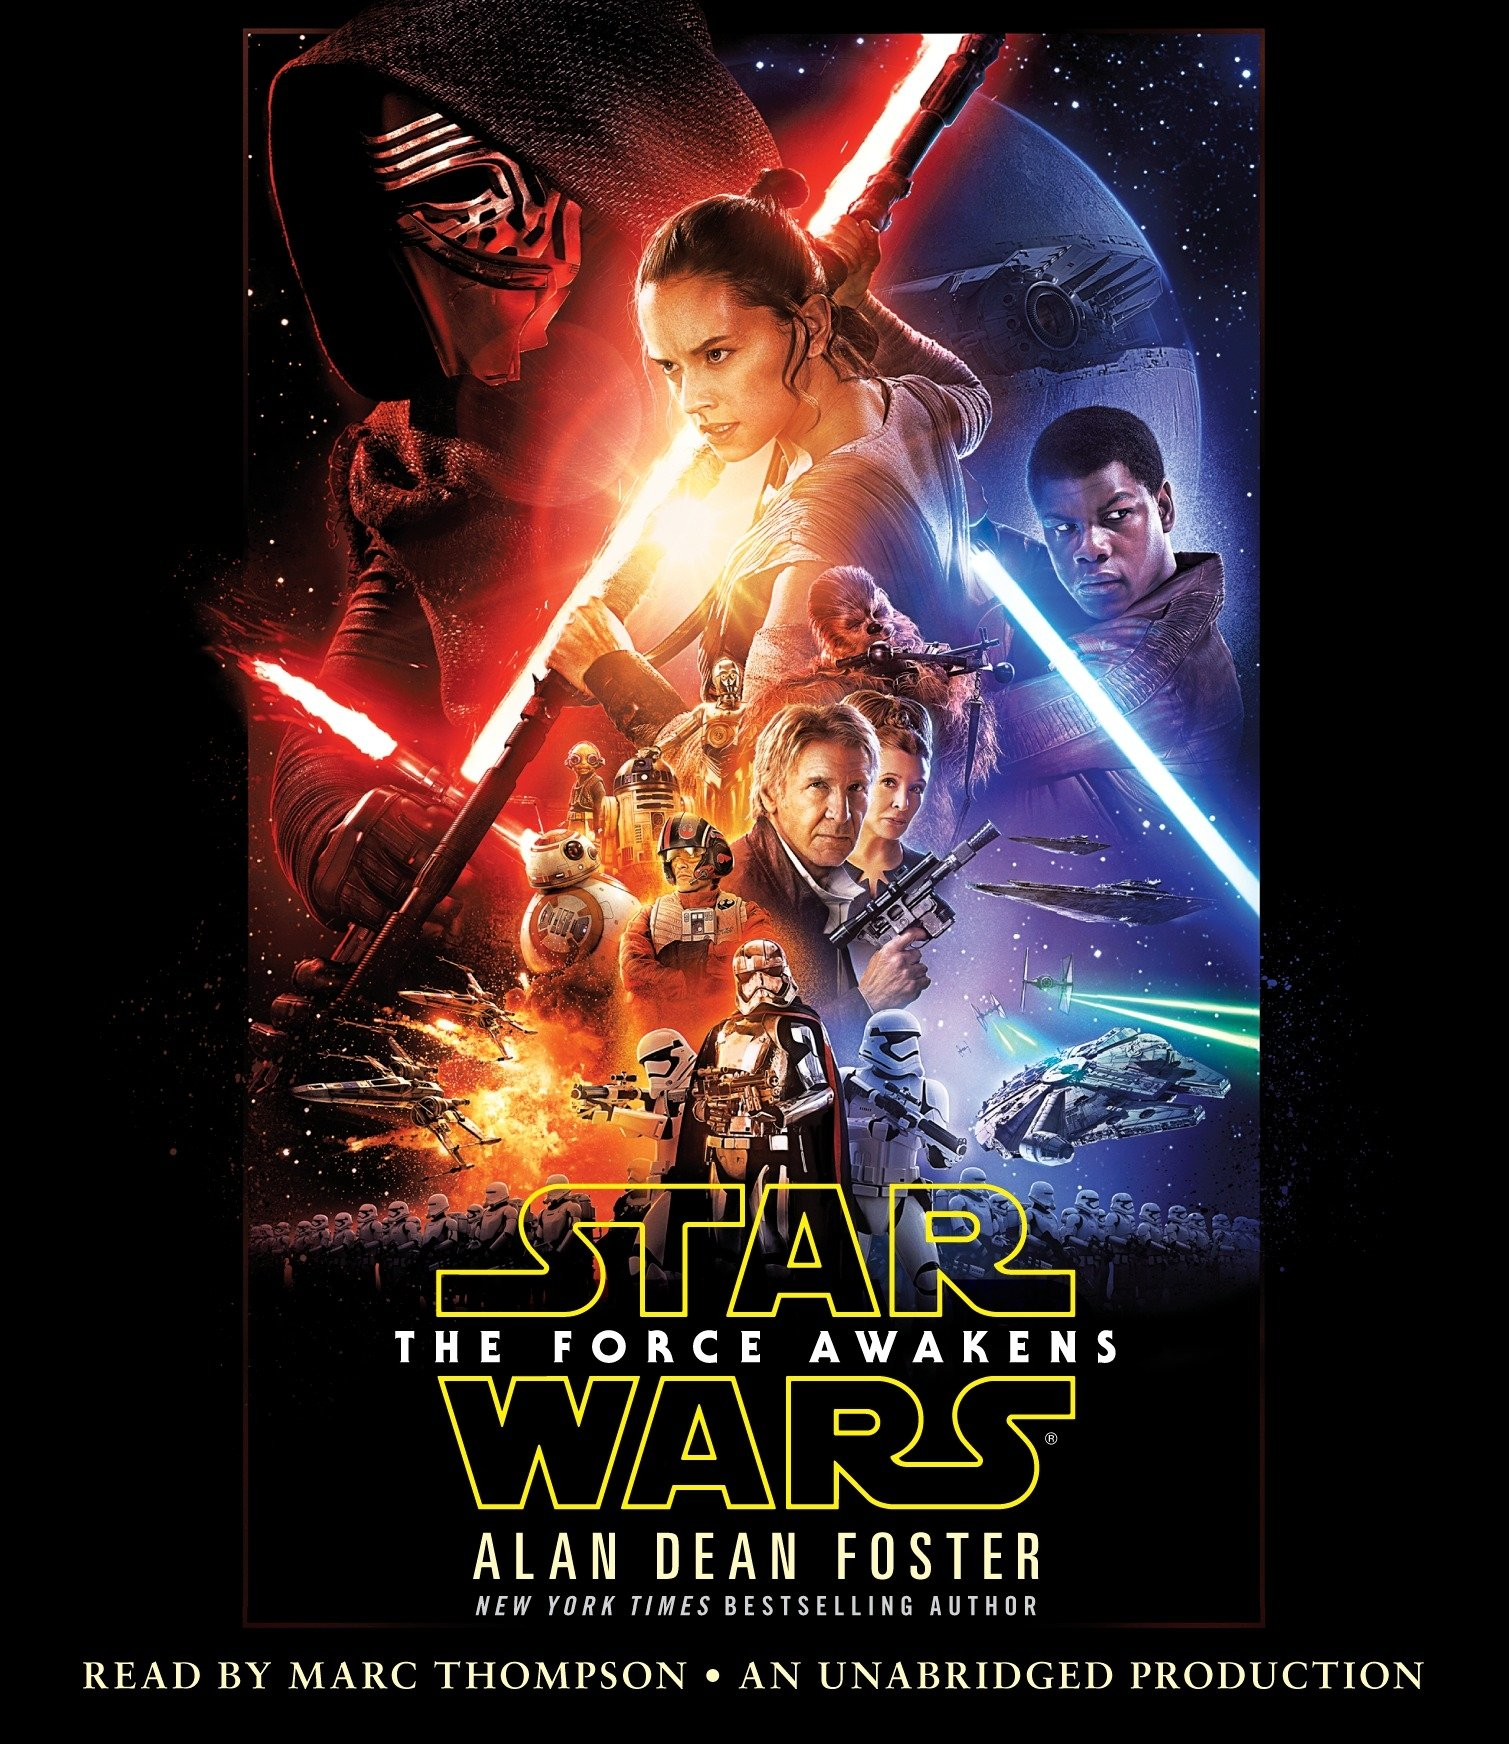 Star Wars: The Force Awakens (Audio CD 2018 release)